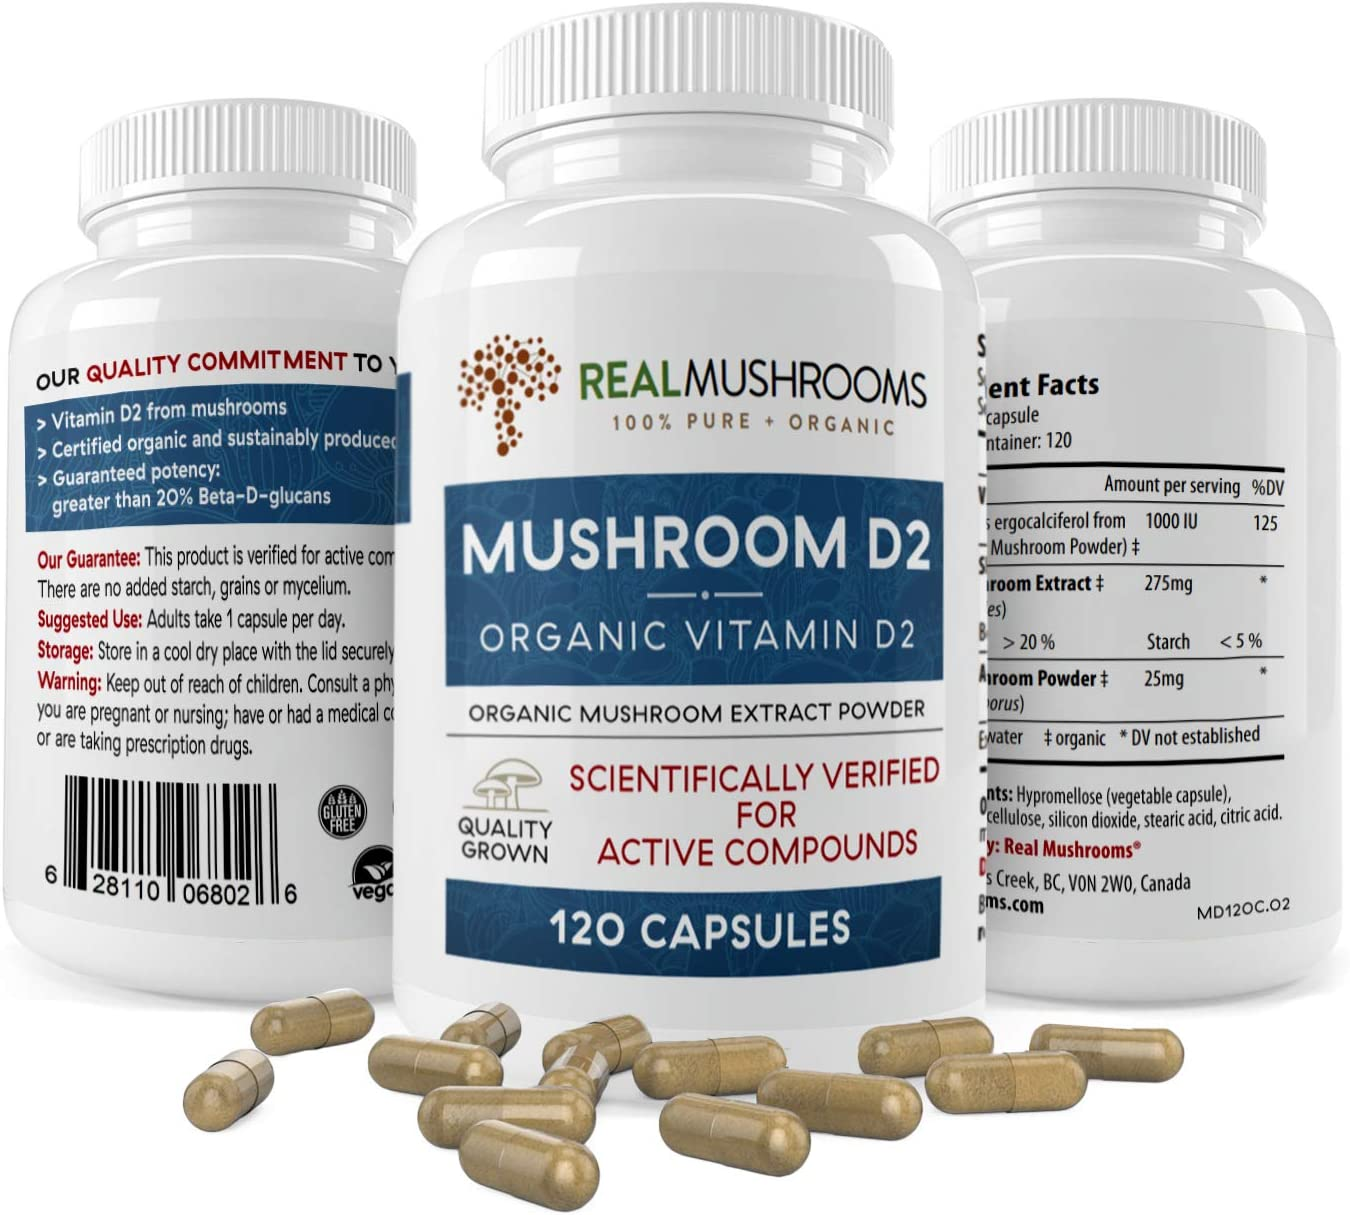 Organic Mushroom Vitamin D2 Supplements (120 caps), Vitamin D Vegan Supplement, Organic Vitamin D 1000 IU Vegan Supplement, Adult Vitamins Supplements, D2 Mushroom Supplement Softgels, Vegan Vitamins